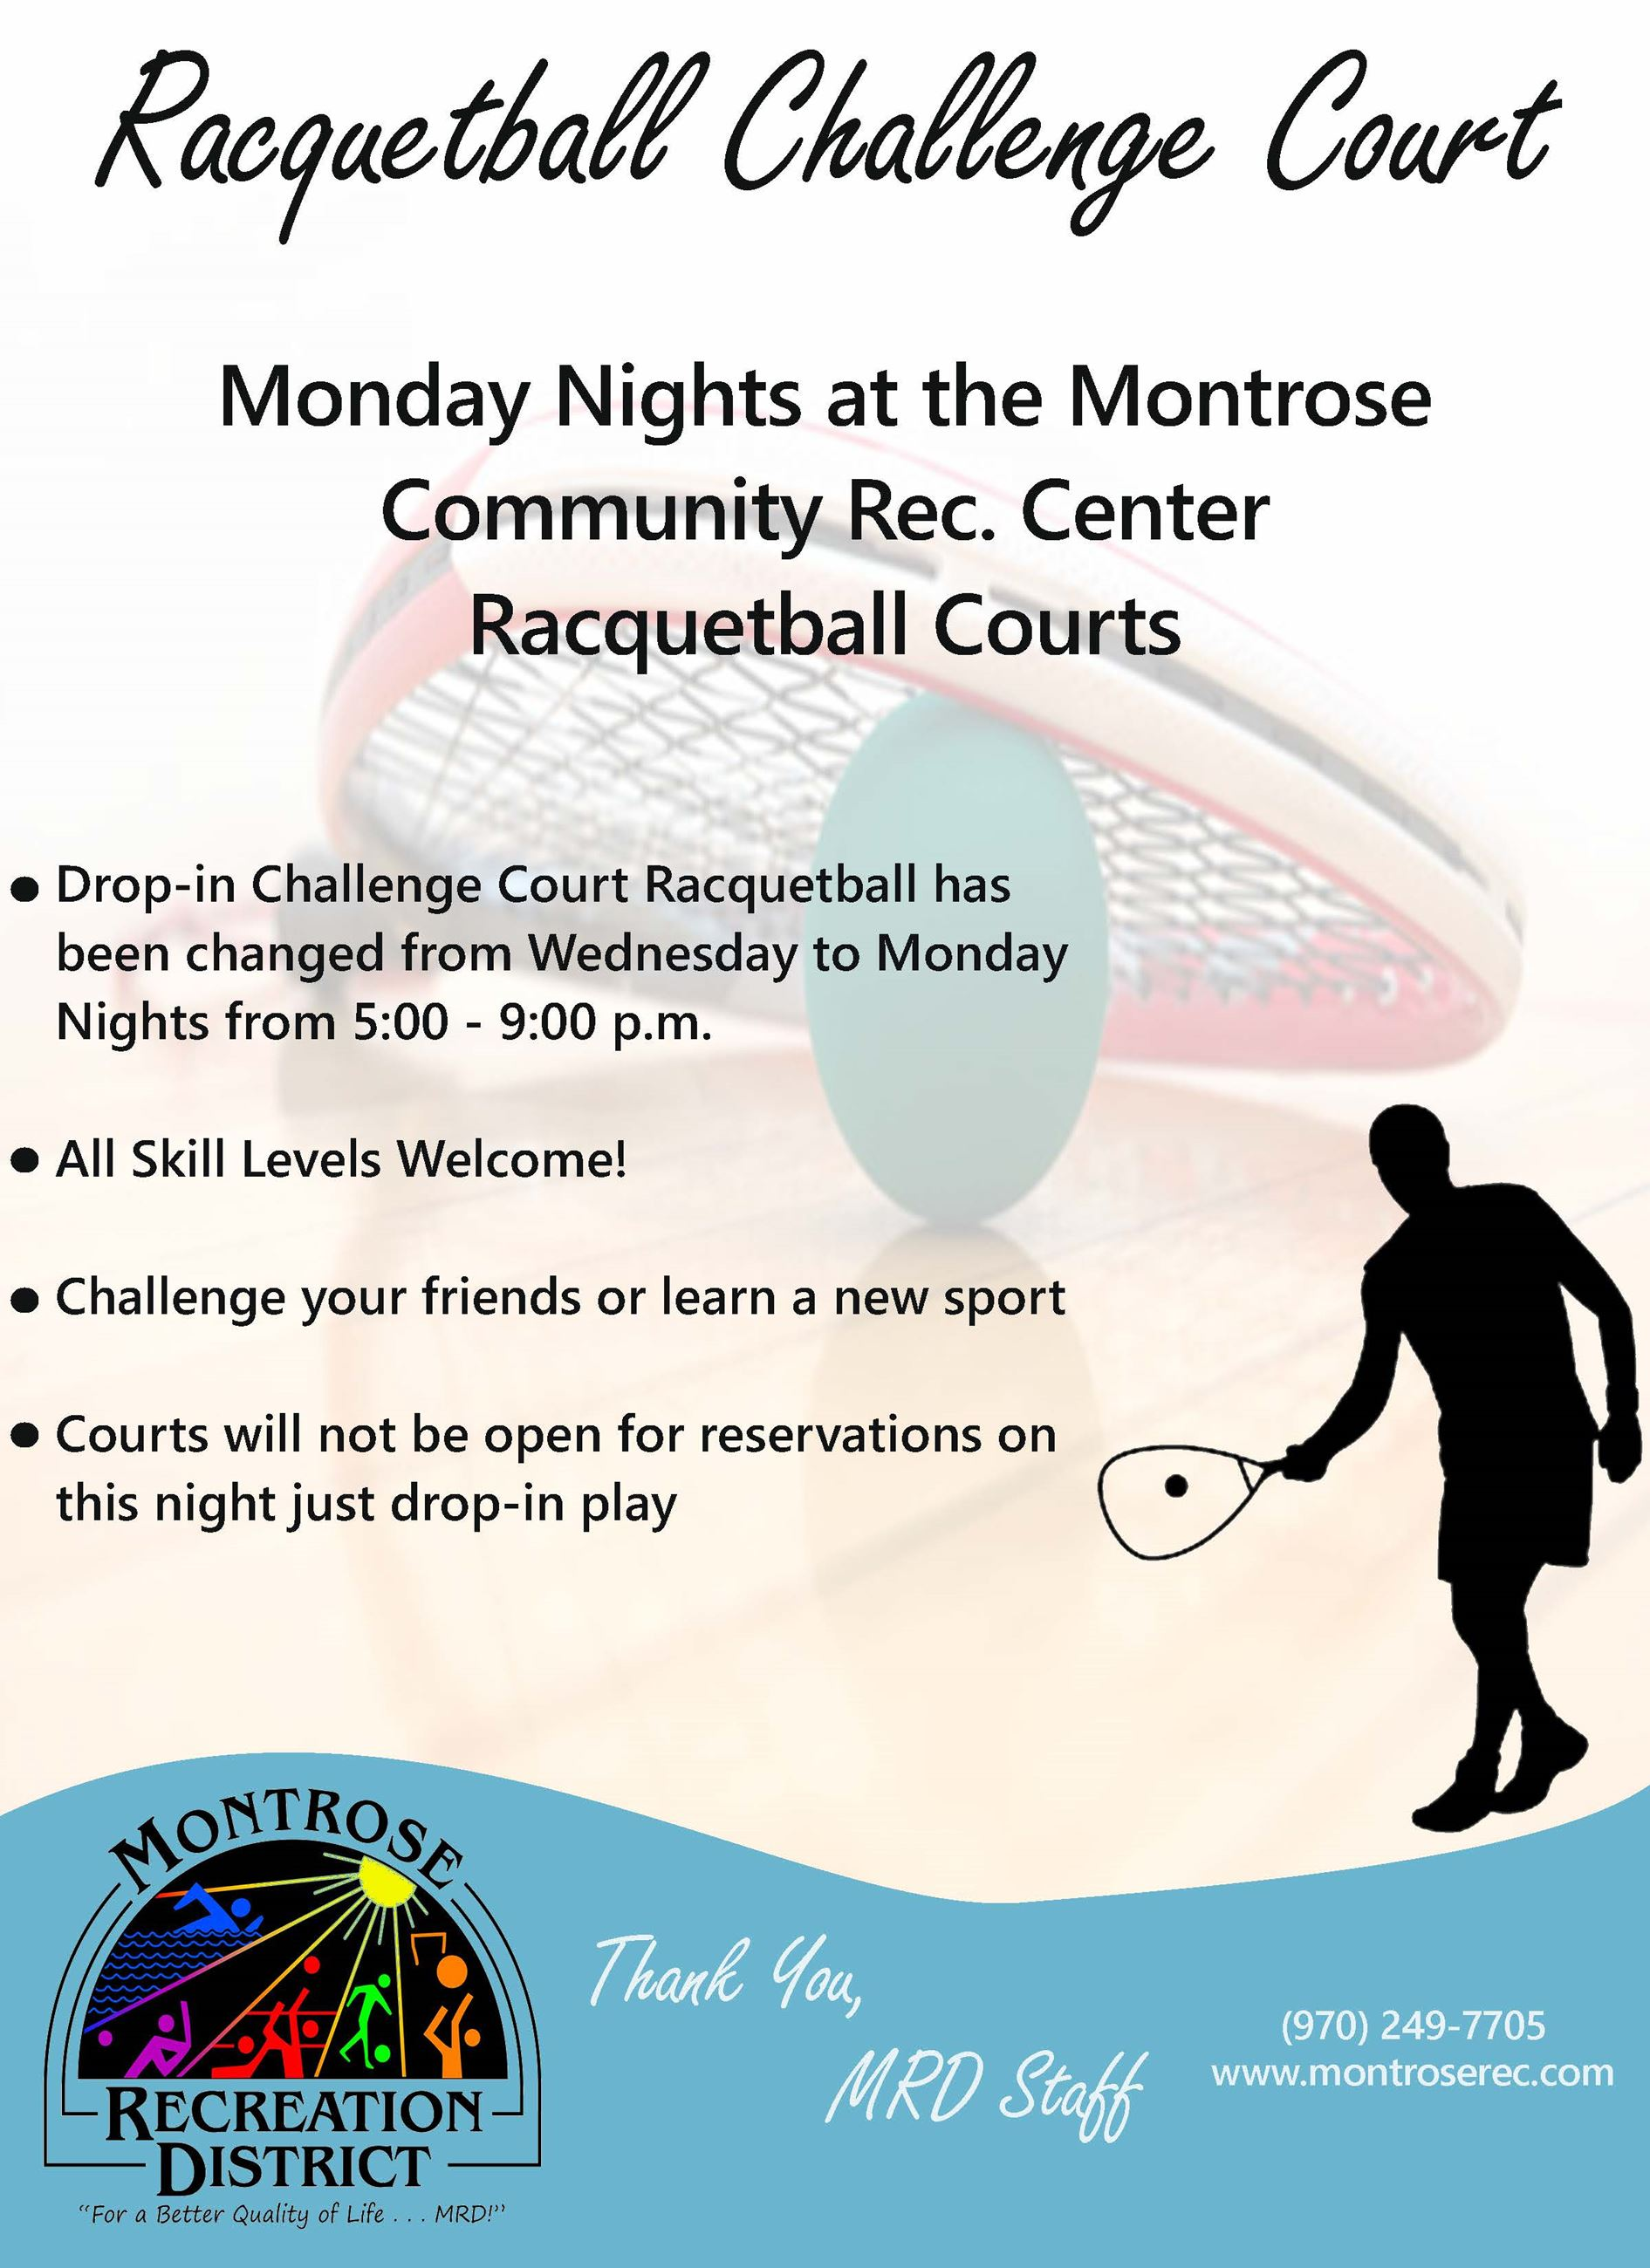 Racquetball Challenge Court Flyer